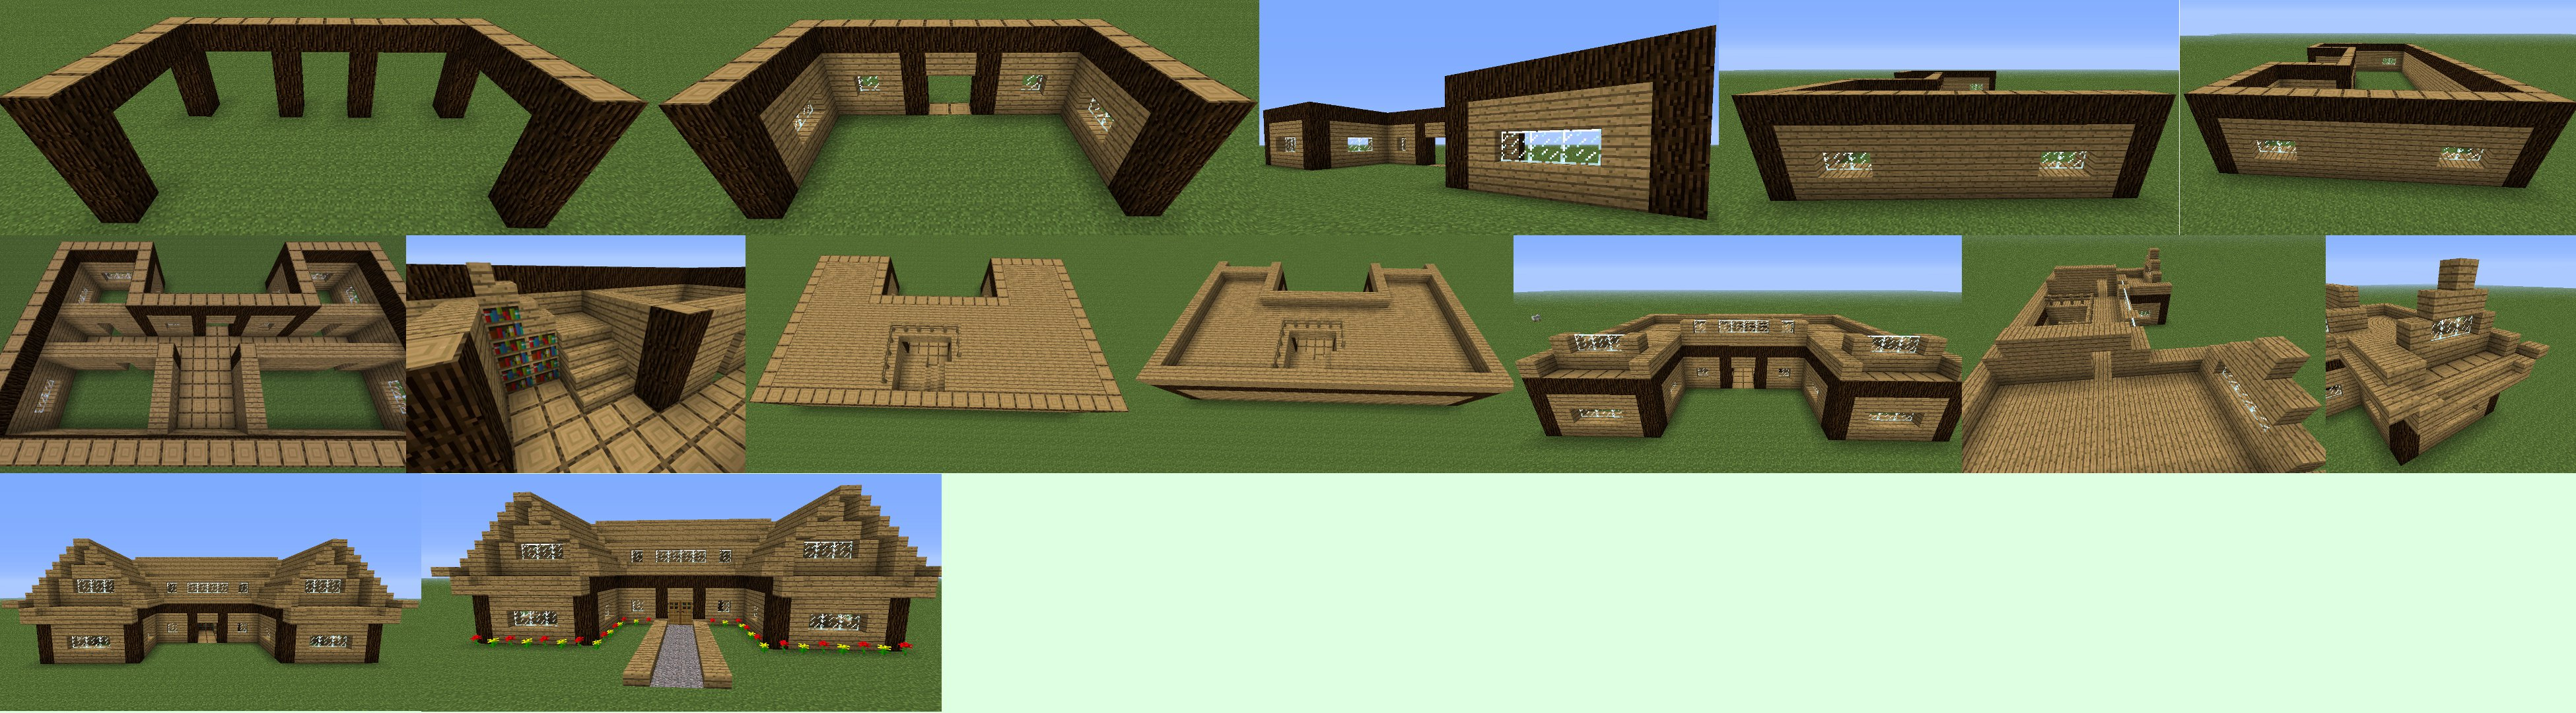 How To Build A Farm House In Minecraft Minecraft Guides